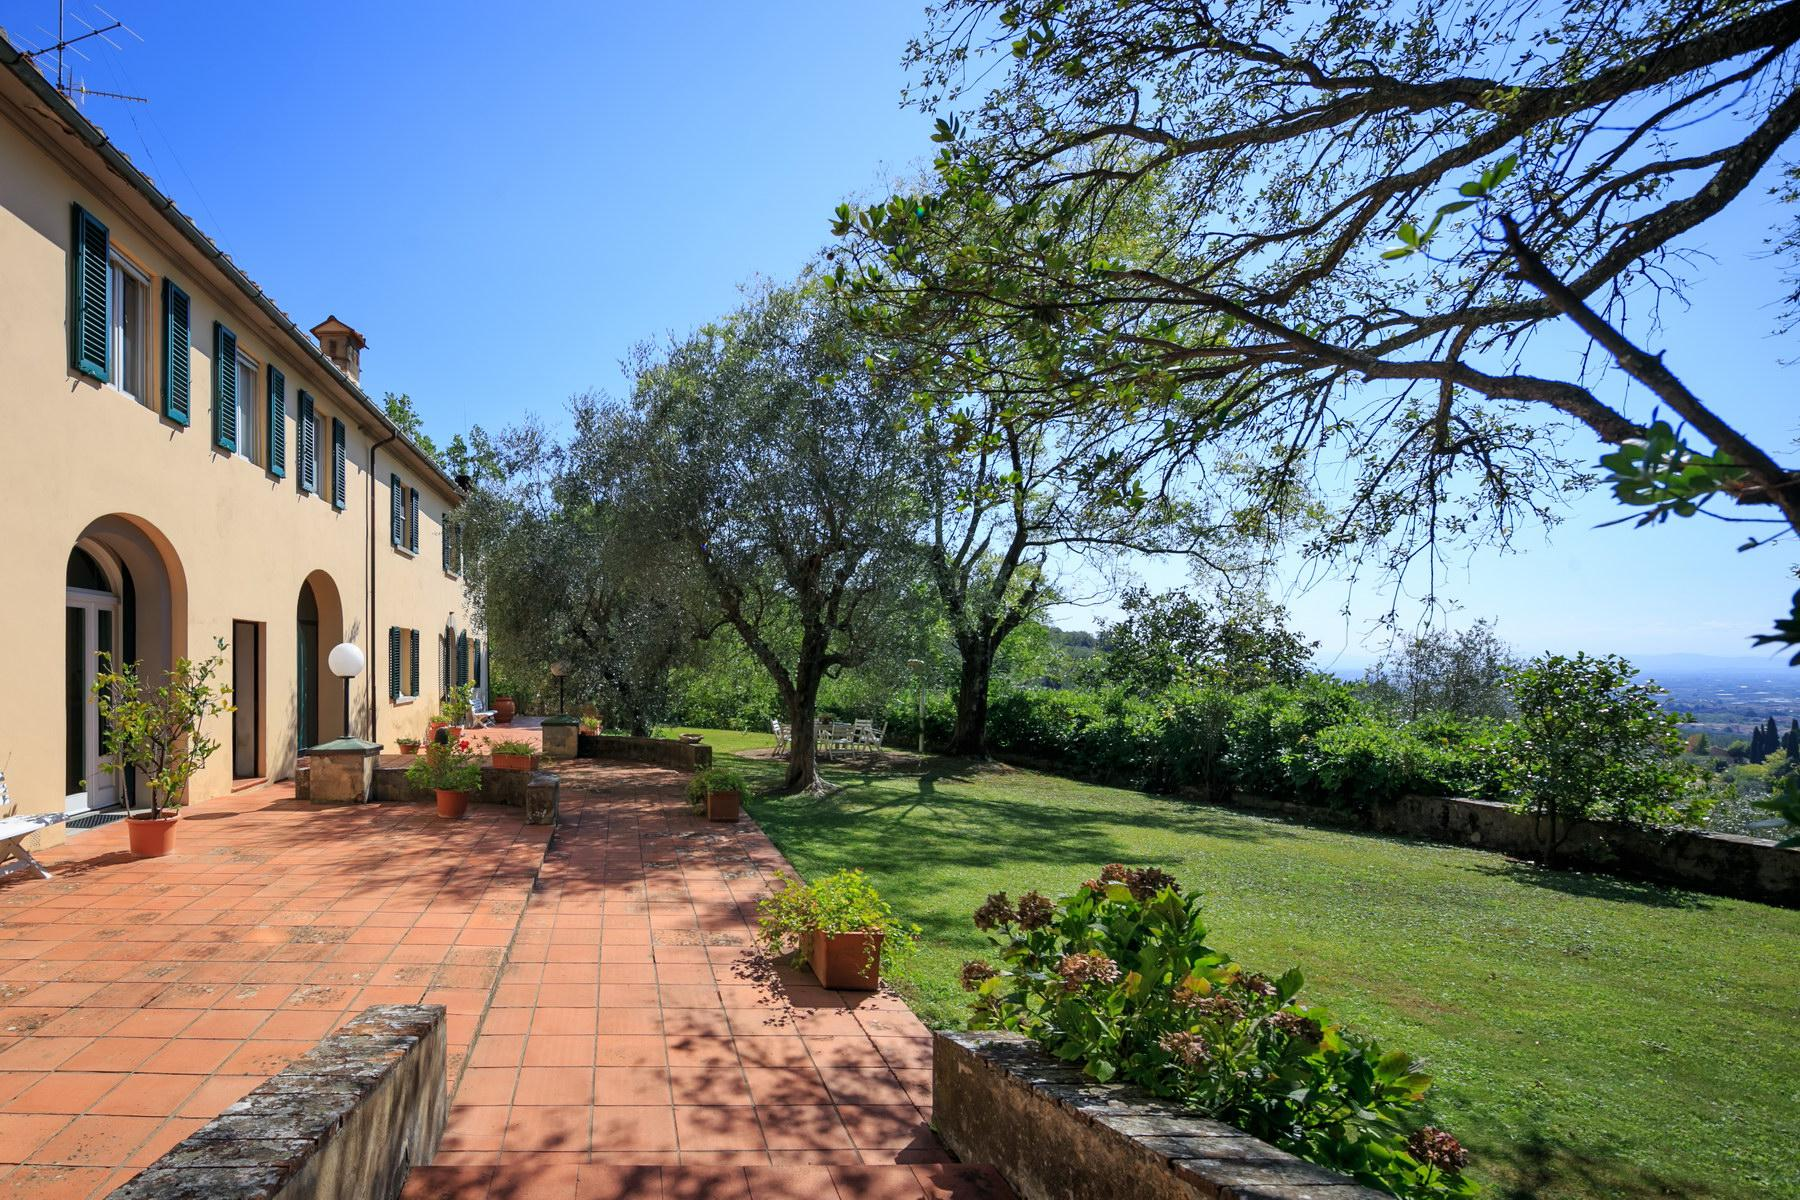 Wonderful farmhouse on the Tuscan hills - 2